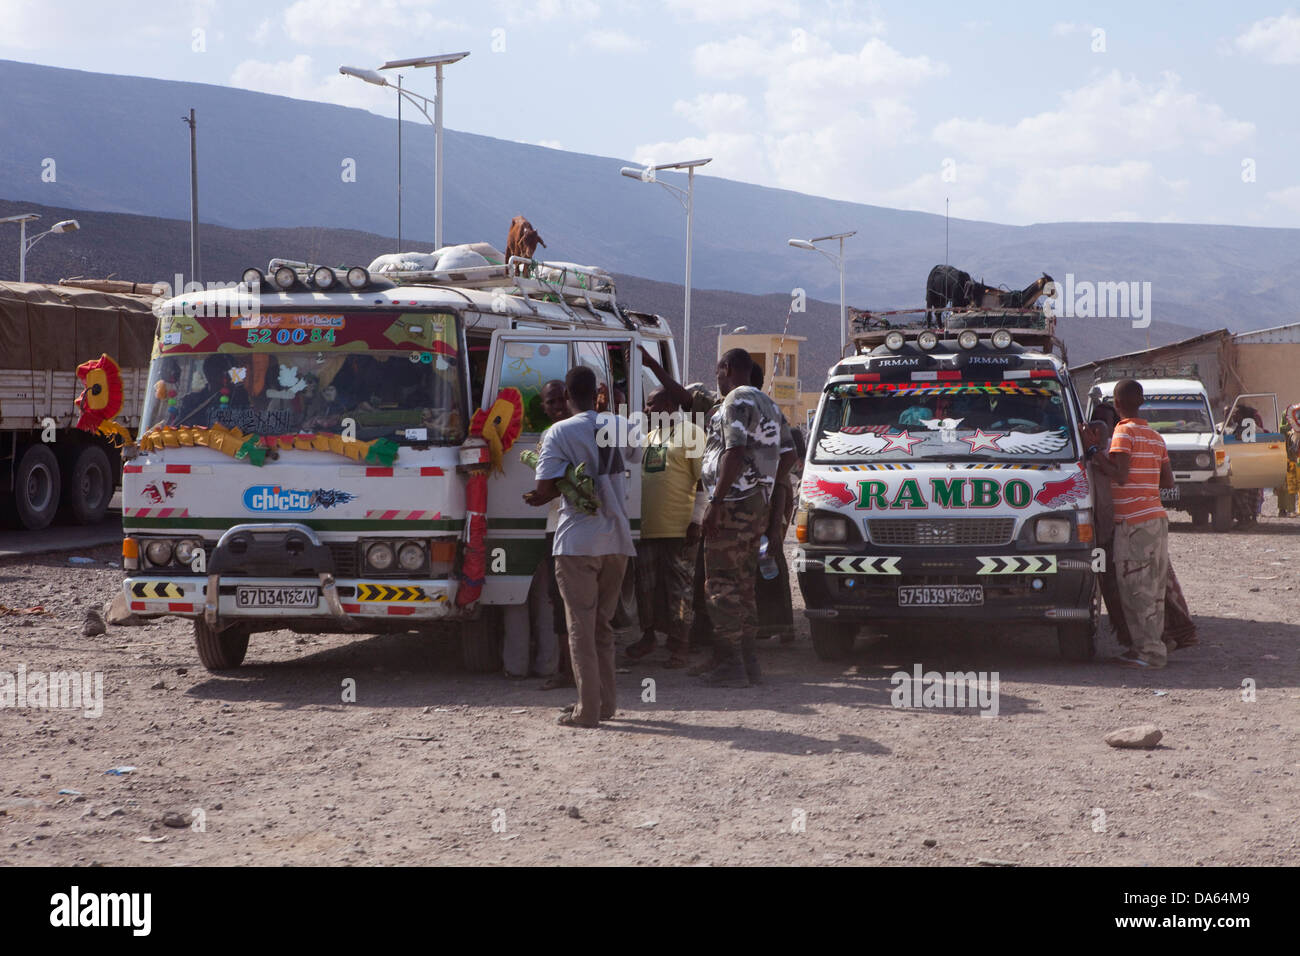 Cars, Automobiles, inches, Djibouti, Galifi, Danakil, Africa, expedition, traffic, transport, Ethiopia, - Stock Image